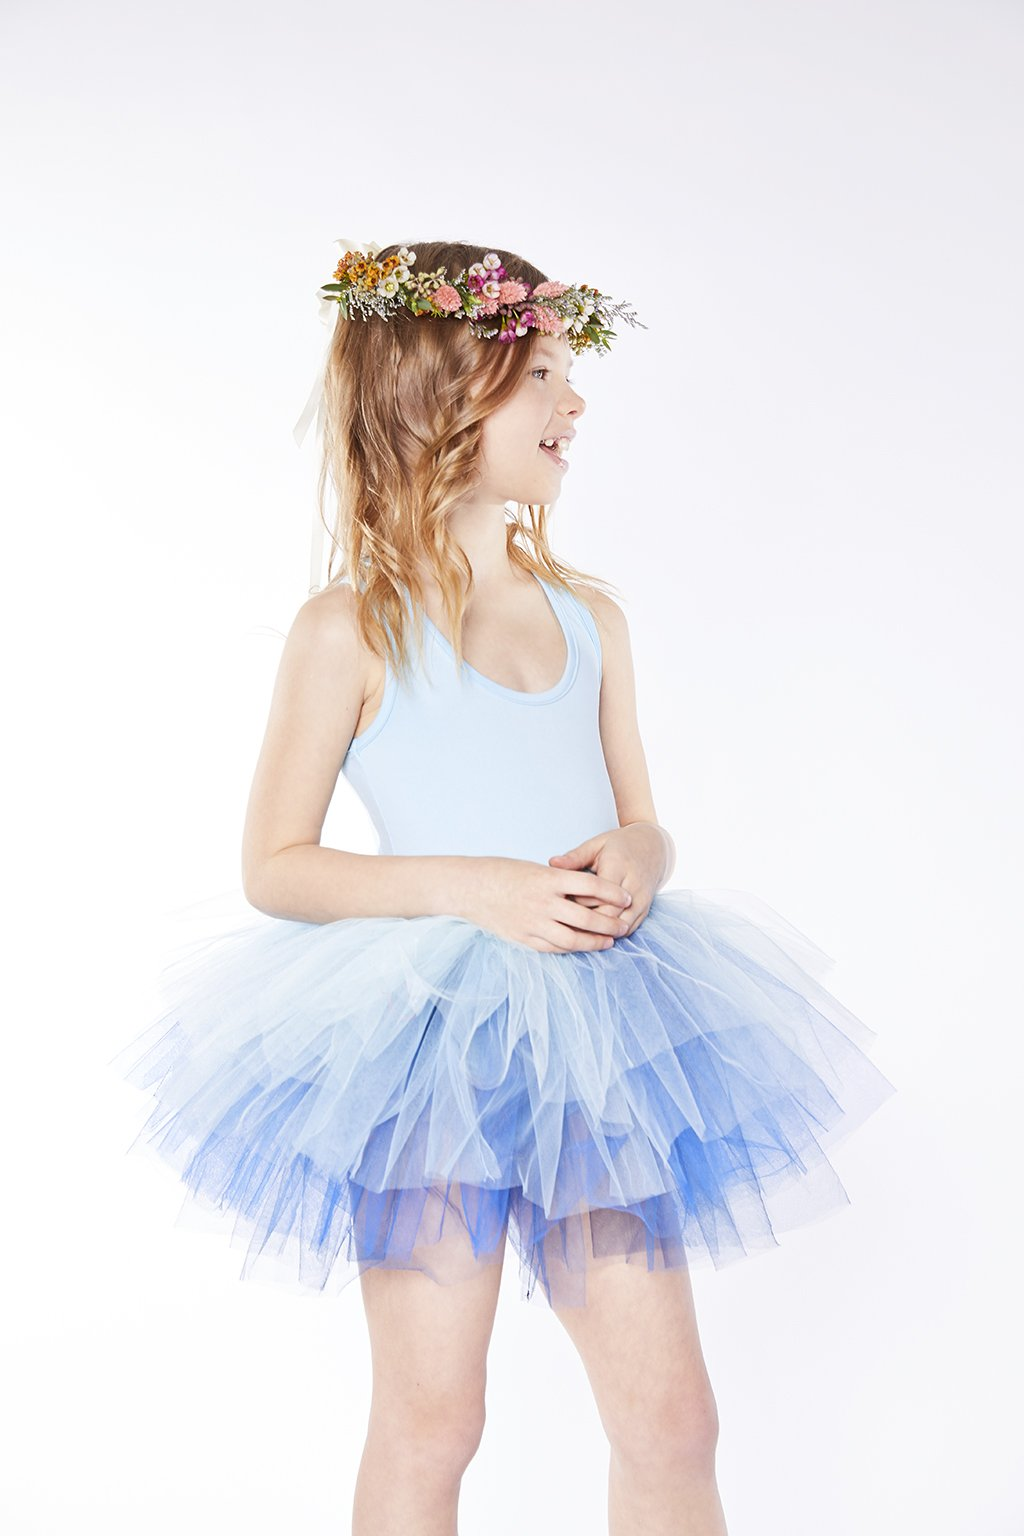 PLUM Tutu Dress - Honor - Last One!! Size: 6Y